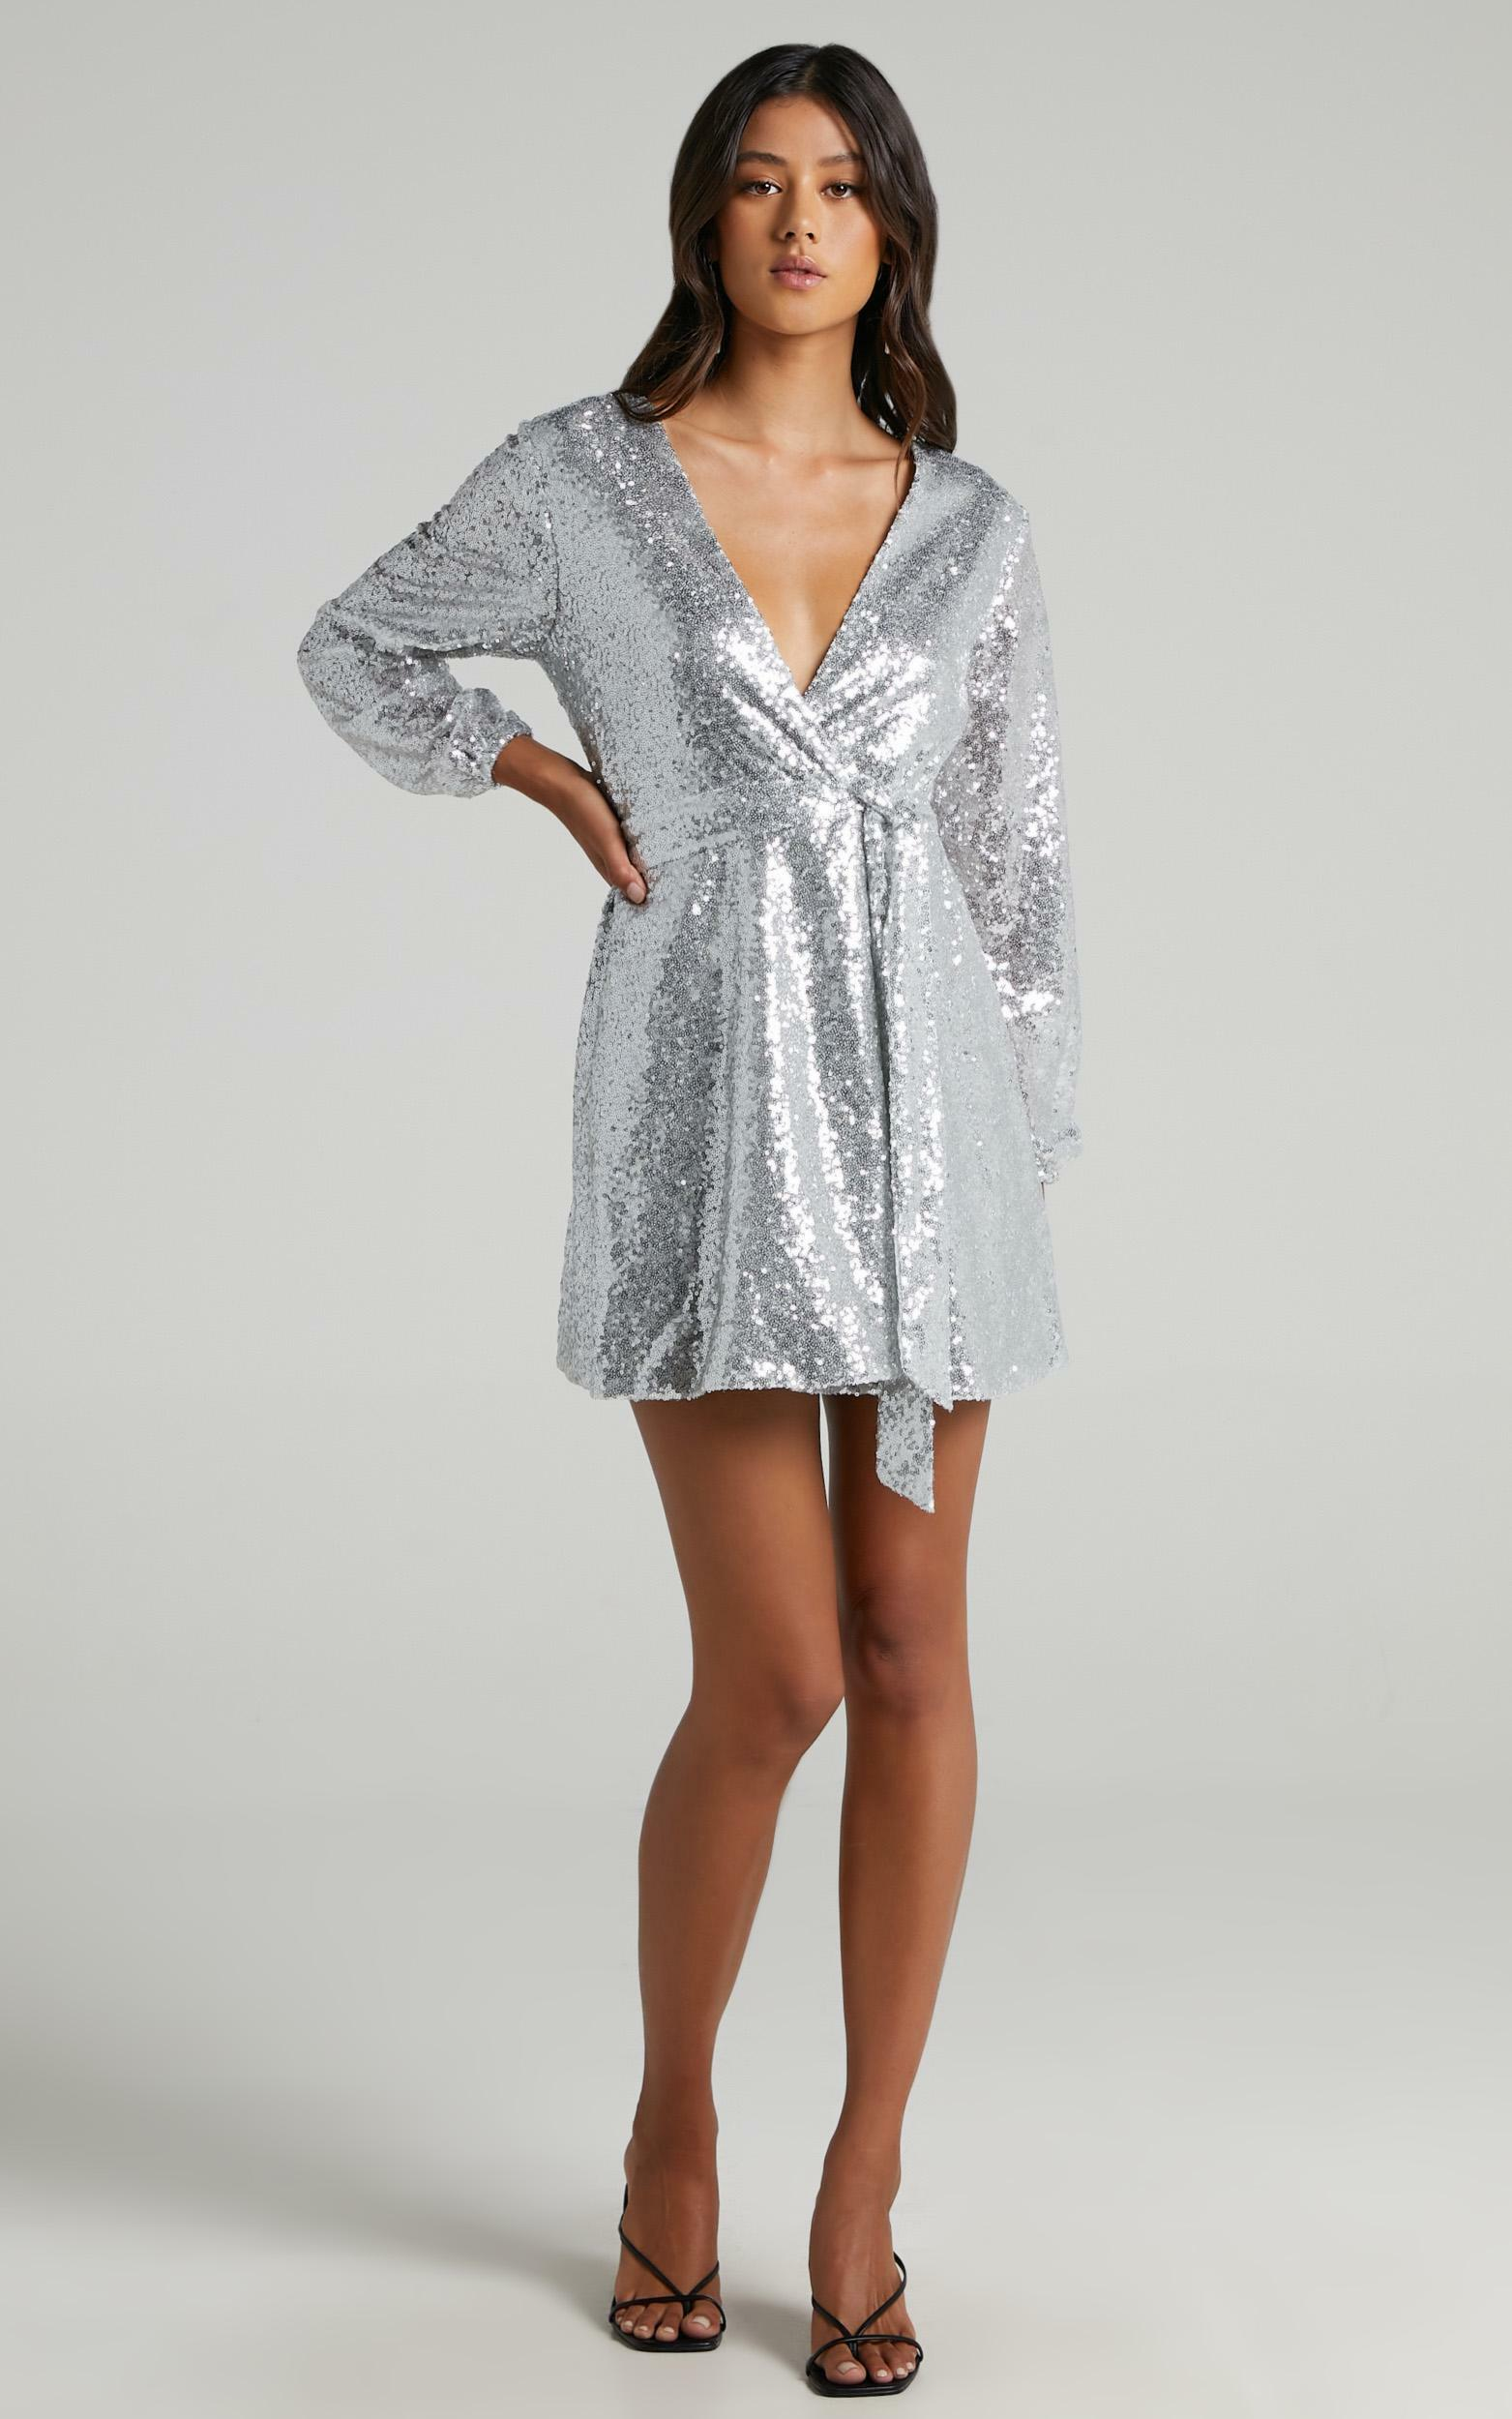 Three Of Us Dress in silver sequin - 20 (XXXXL), Silver, hi-res image number null